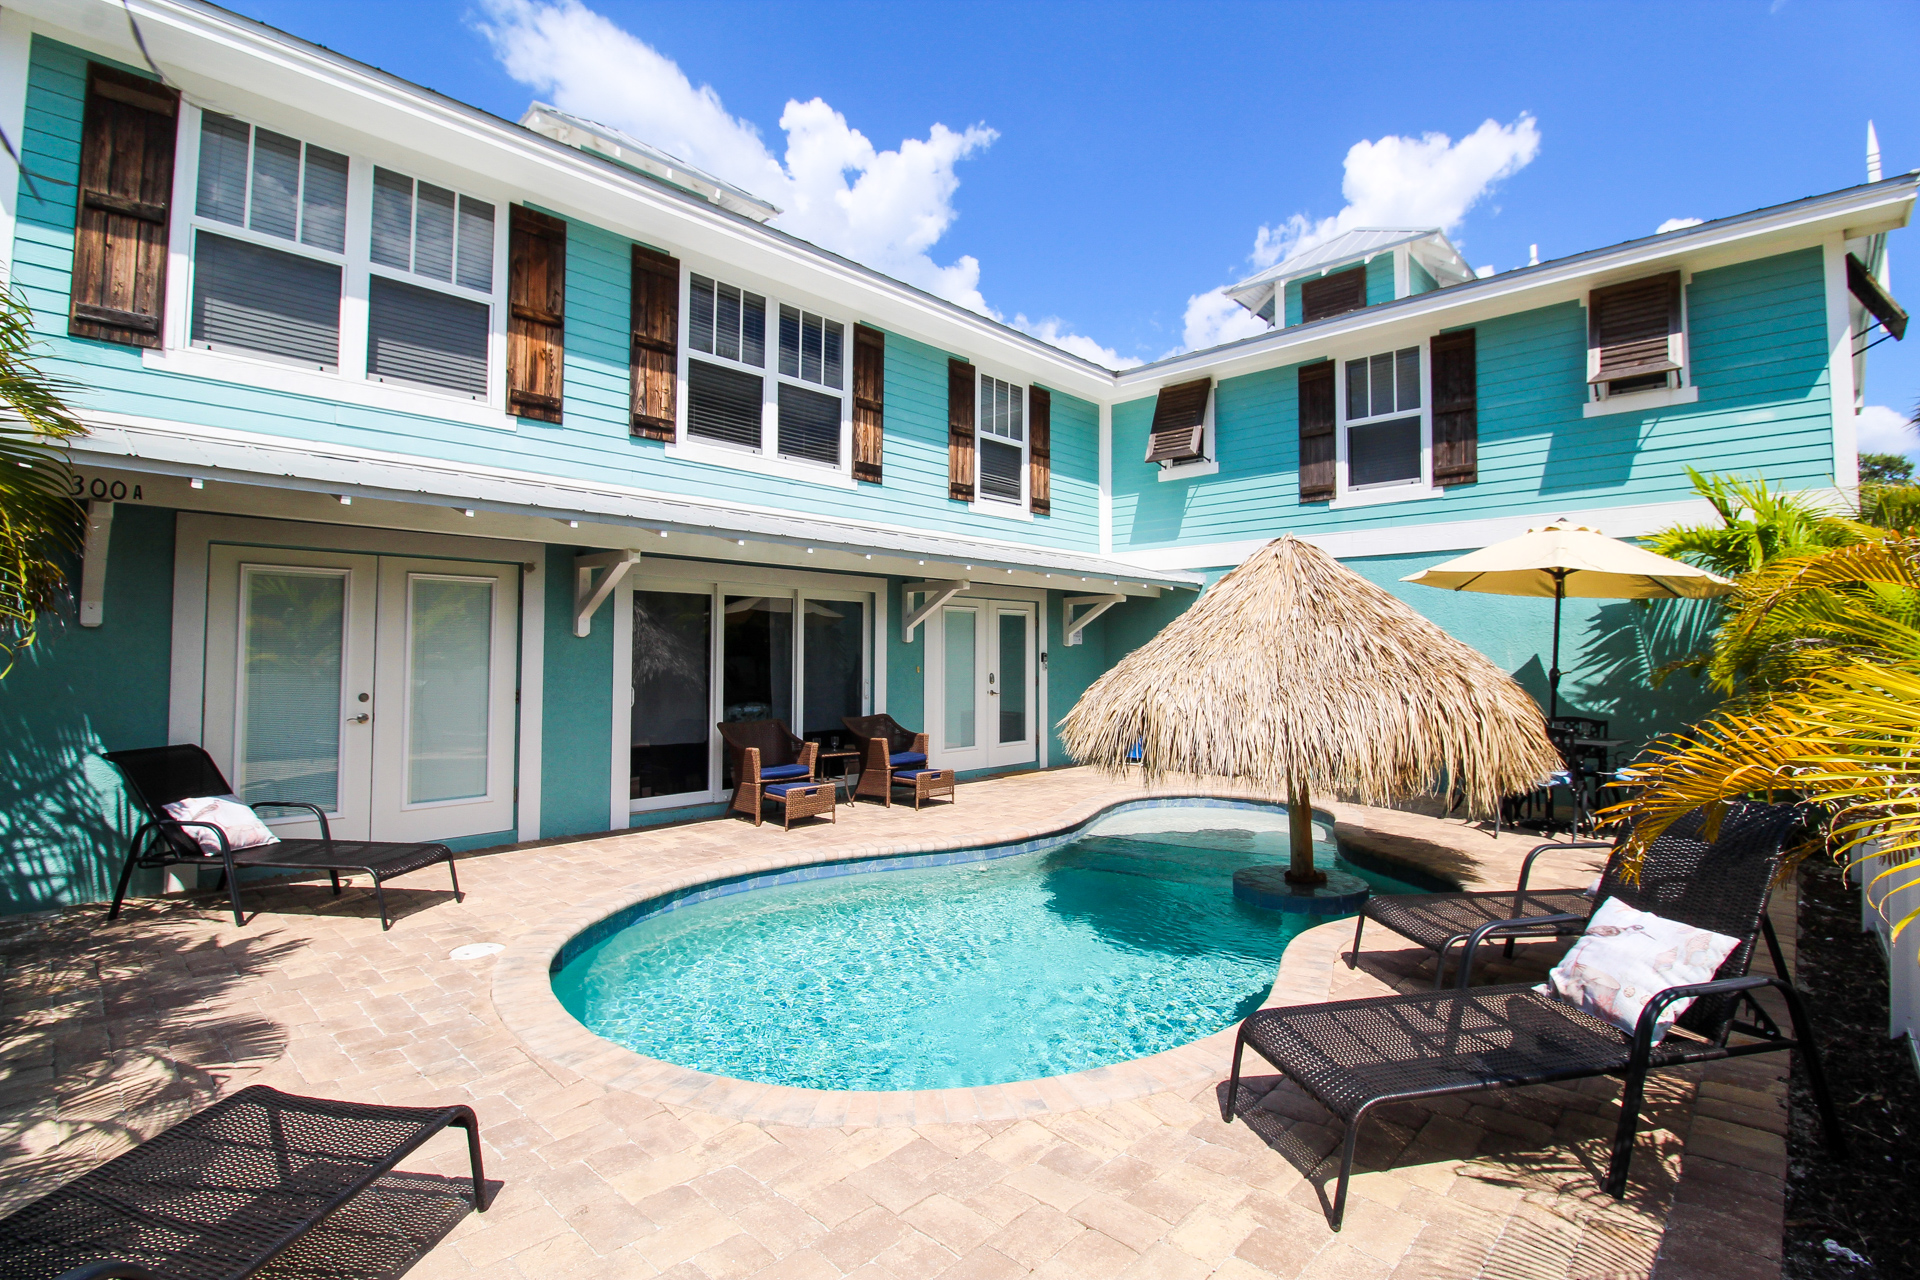 Sunrise Shore Pet Friendly Place To Stay On Vacation 20 Bedroom 20 ...